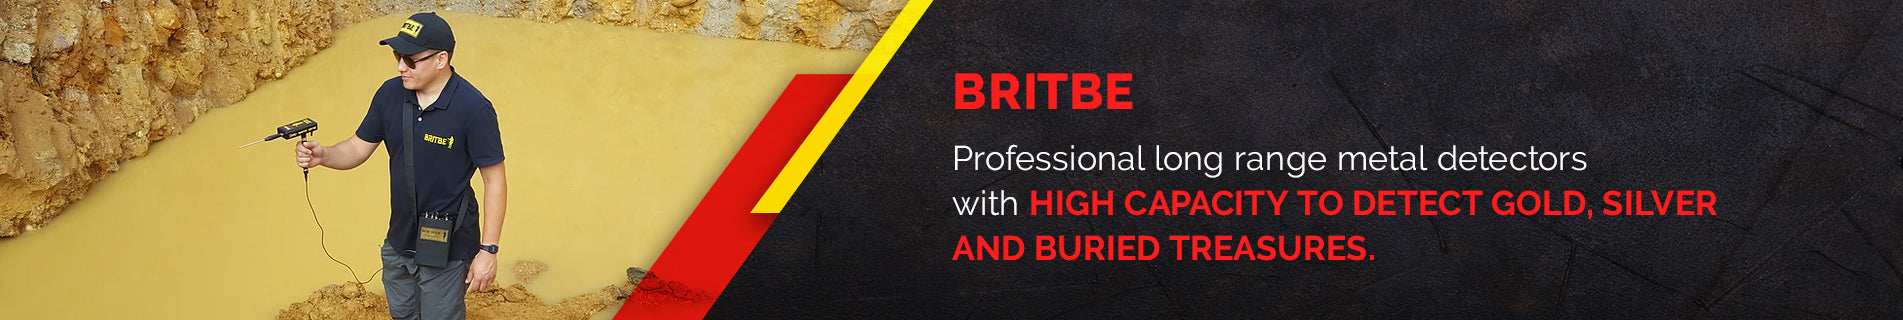 Britbe geolocators and metal detectors | Free Shipping on USA